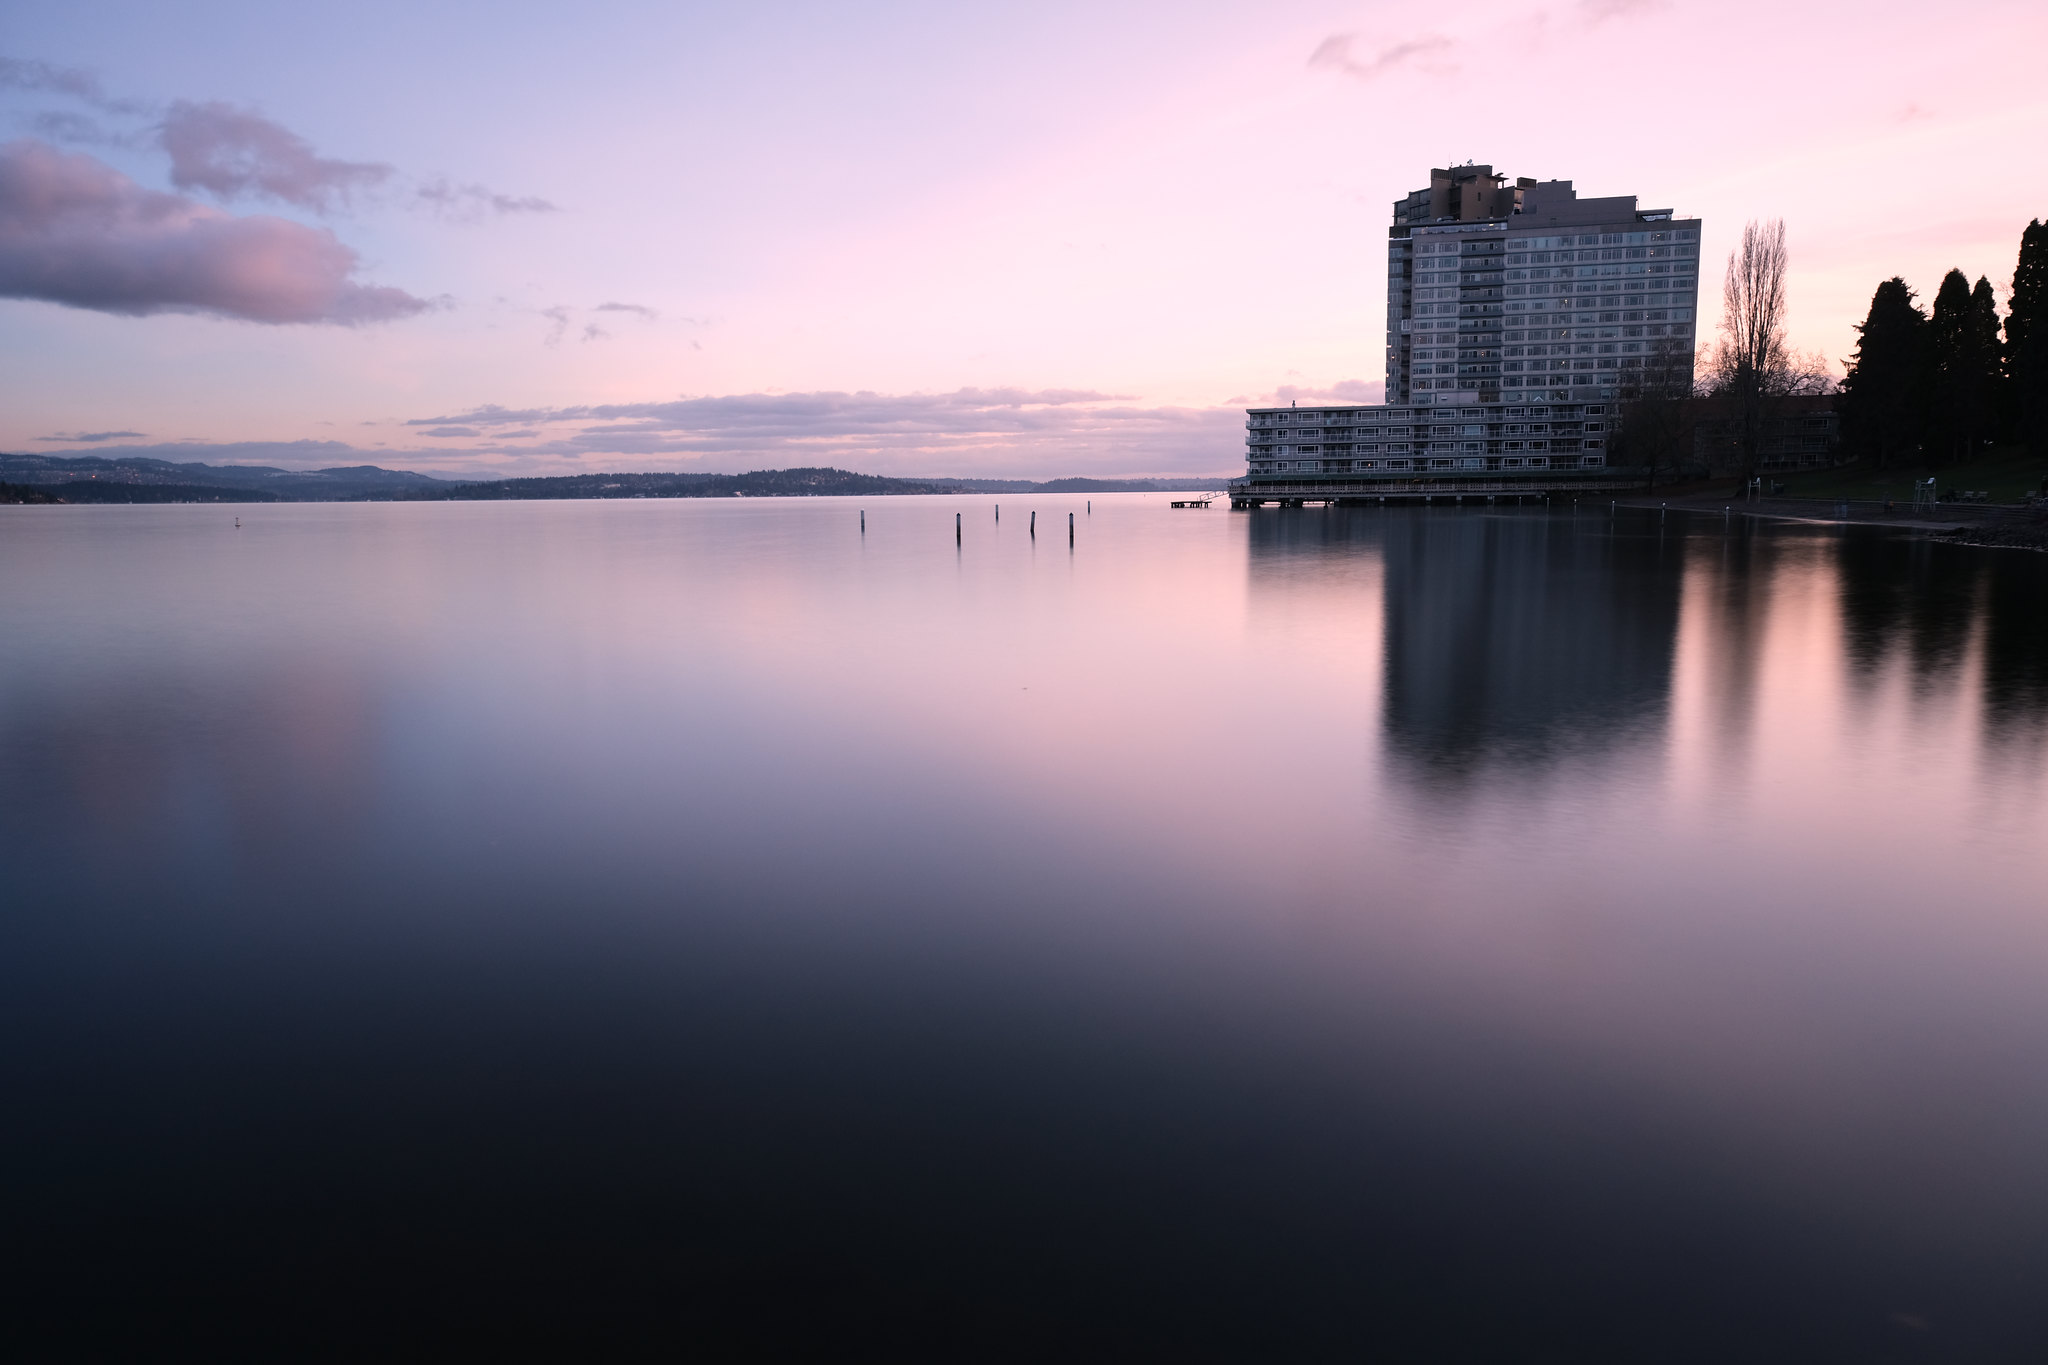 Seattle, WA, US - Long exposure photograph of some buildings on Lake Washington. The sky is pink, and the water looks almost still because of the long exposure effect.